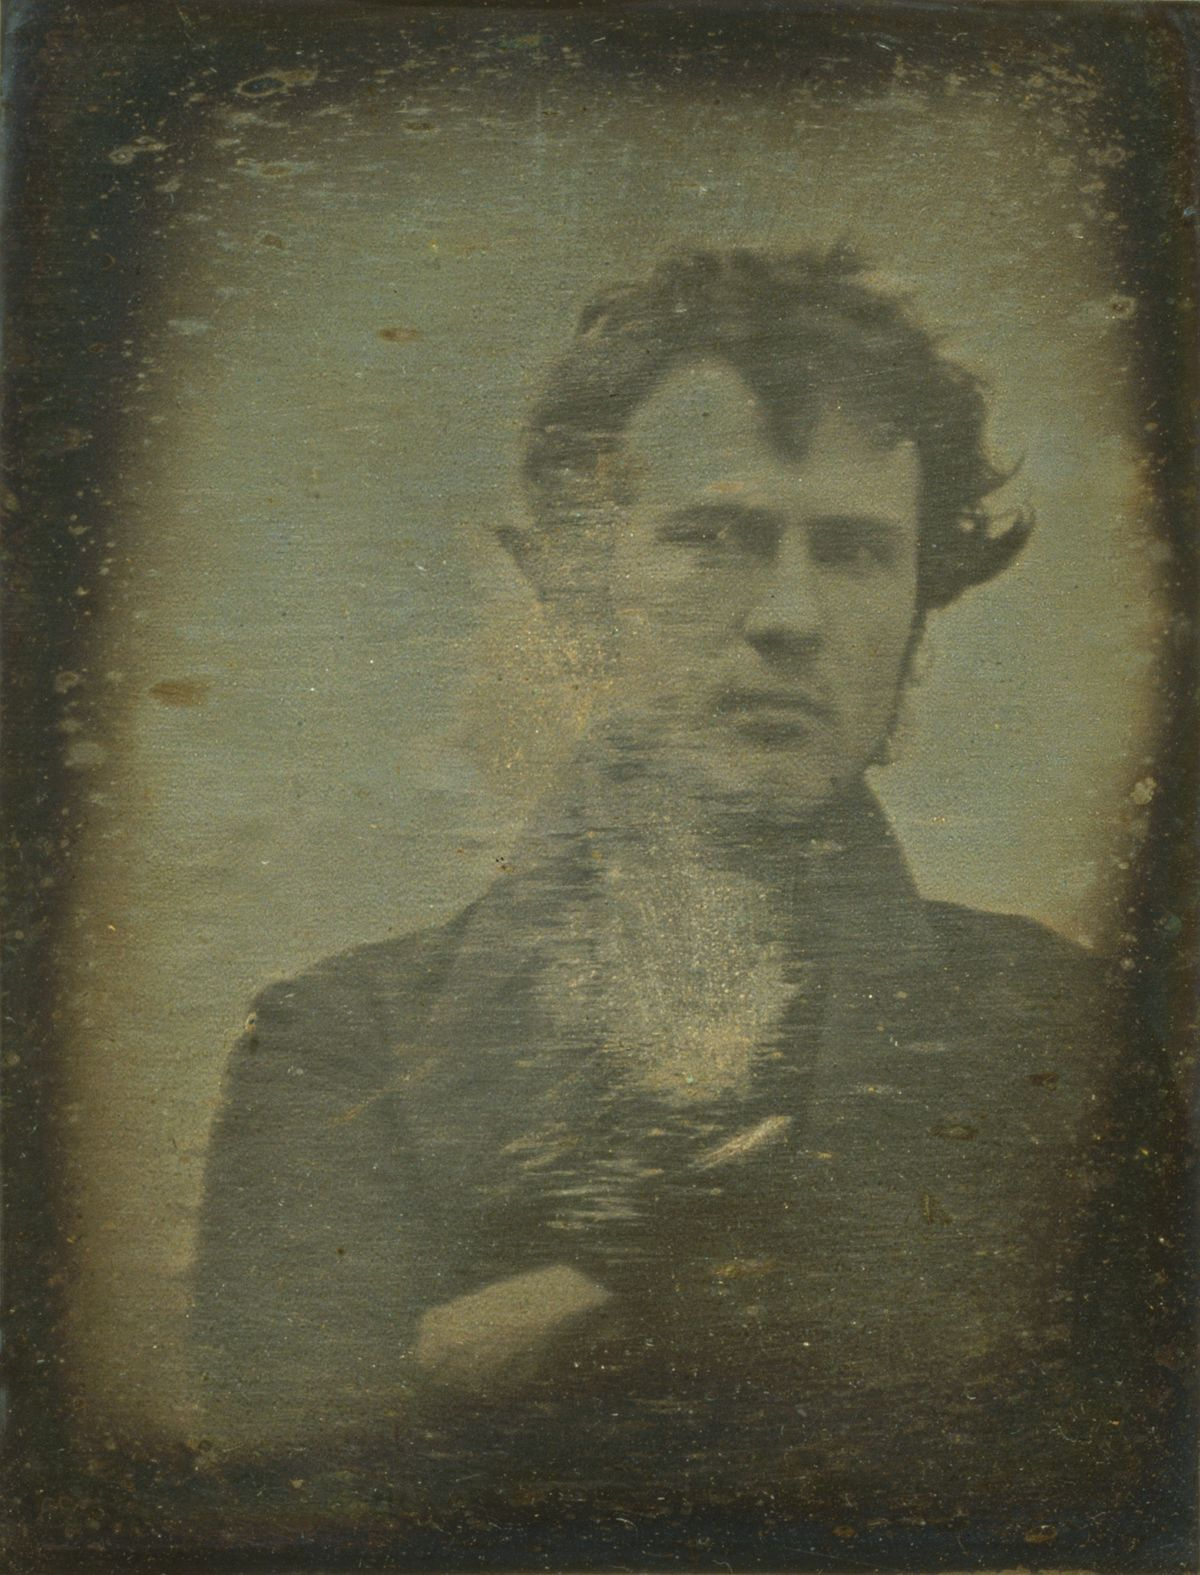 Robert Cornelius - An American pioneer in photography who produced a photo of himself, which was recorded as the first self- photograph of a person.